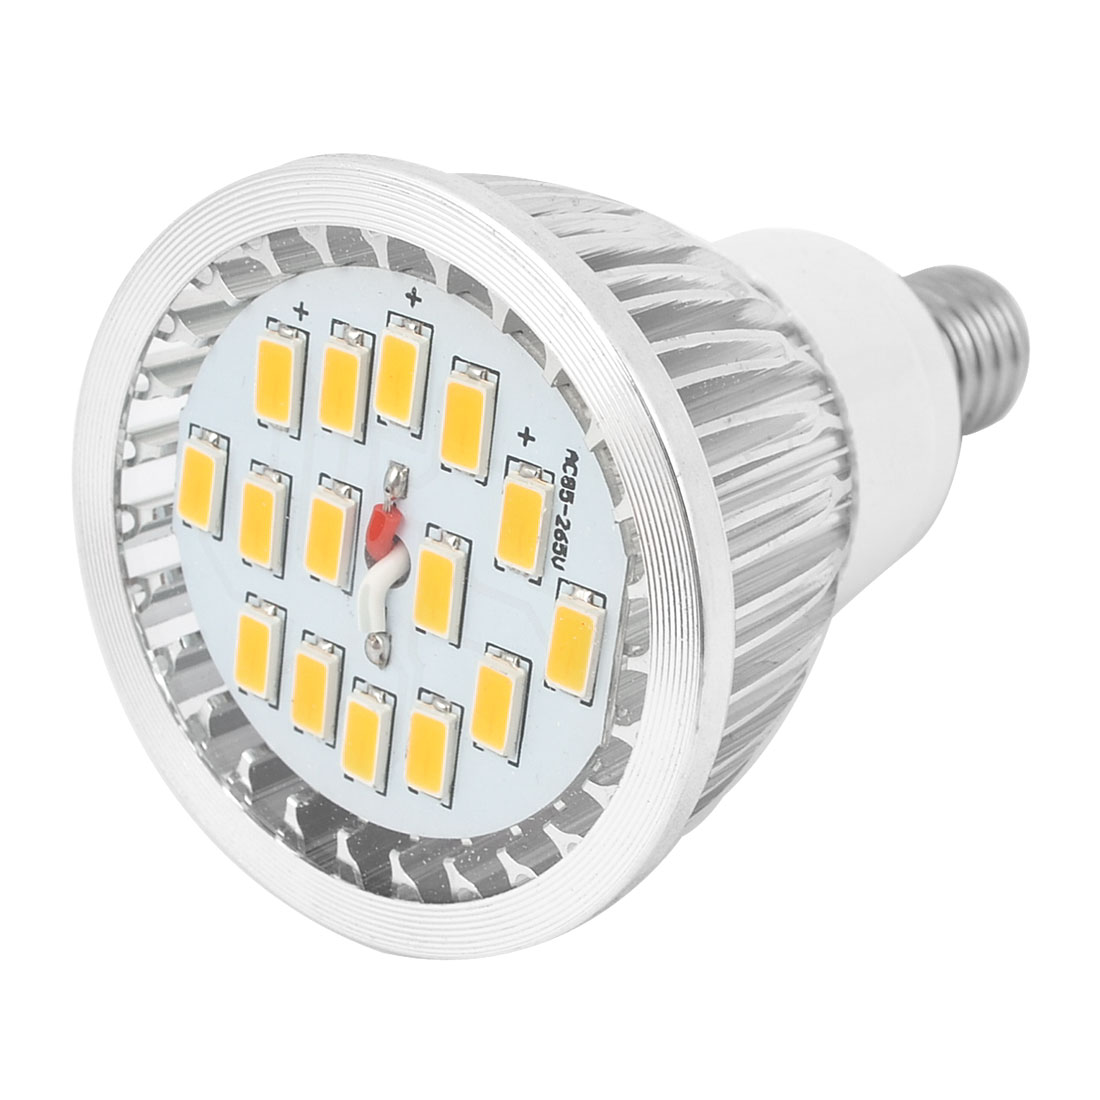 Warm White 7W E14 5730 SMD 15 LEDs Globe Light Spotlight Bulb AC85-265V